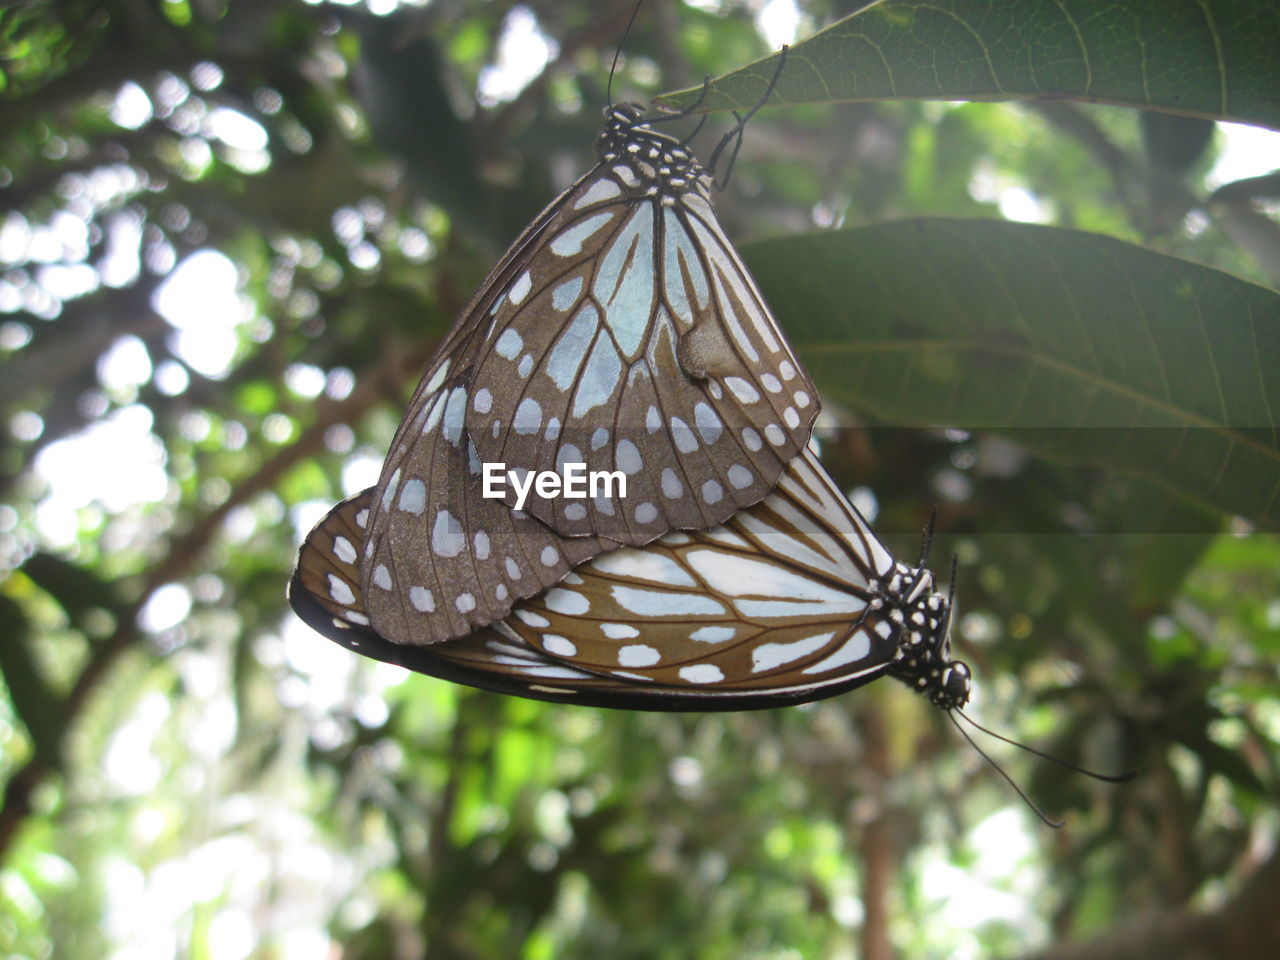 butterfly - insect, animal themes, one animal, day, insect, animals in the wild, animal wildlife, low angle view, butterfly, no people, tree, nature, cocoon, animal markings, outdoors, close-up, leaf, beauty in nature